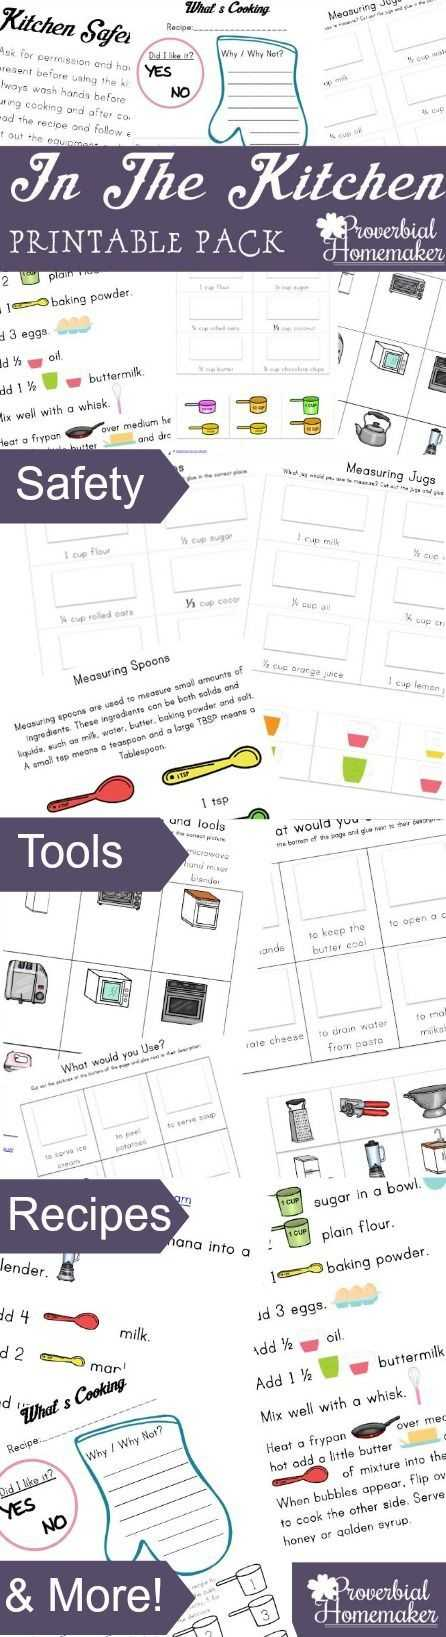 Kitchen Safety Worksheets or Kids In the Kitchen Printable Pack